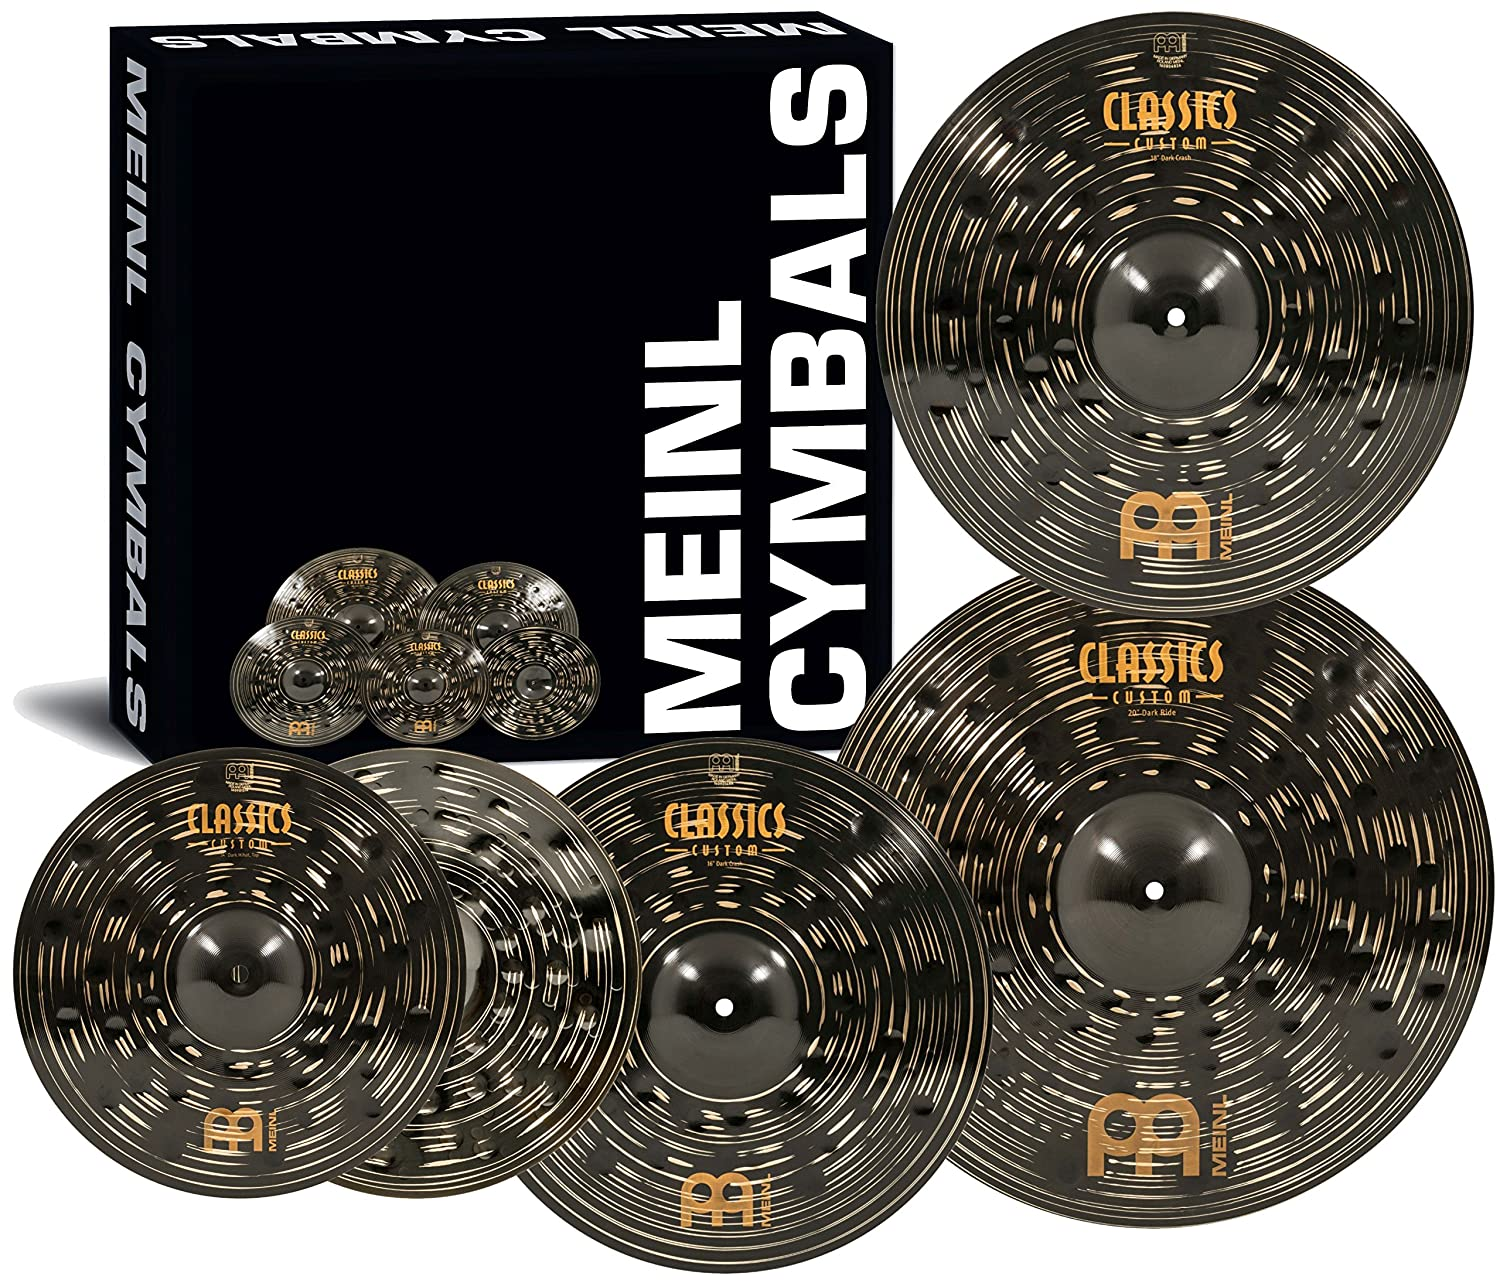 "Meinl Cymbals CCD460+18 Classics Custom Dark Pack Bonus Cymbal Box Set with FREE 18"" Dark Crash (VIDEO)"